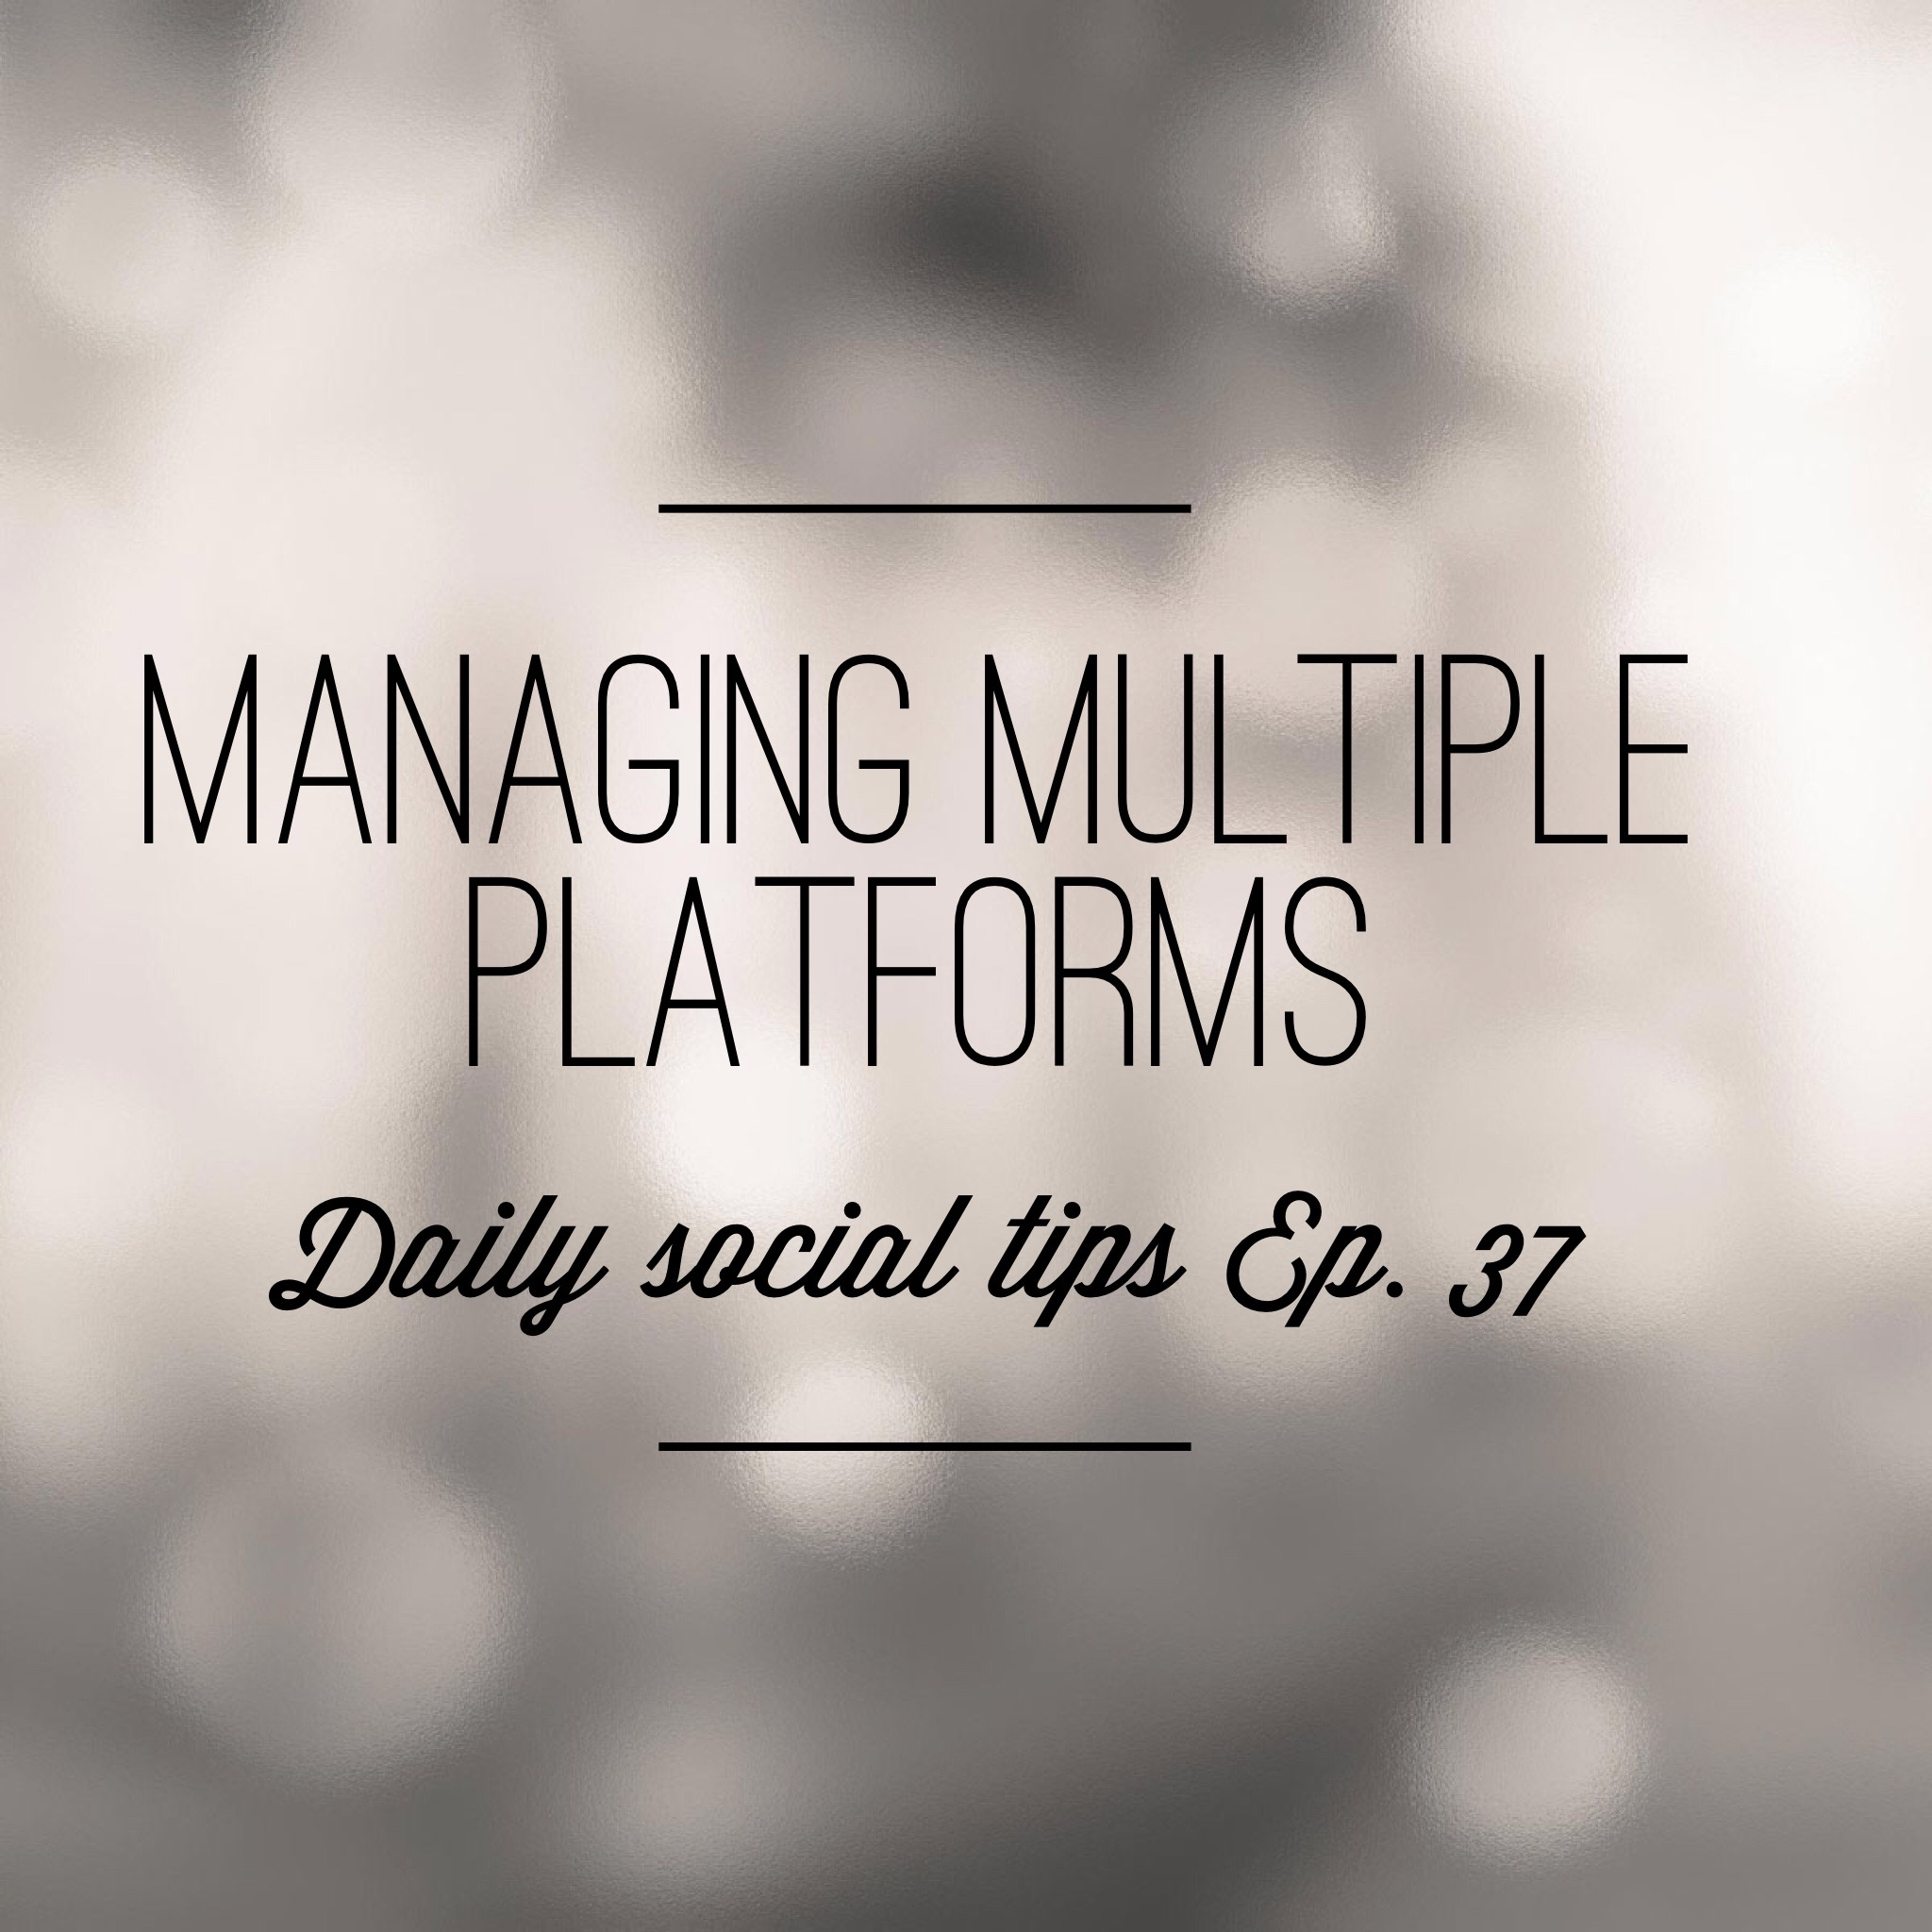 managing multiple platforms